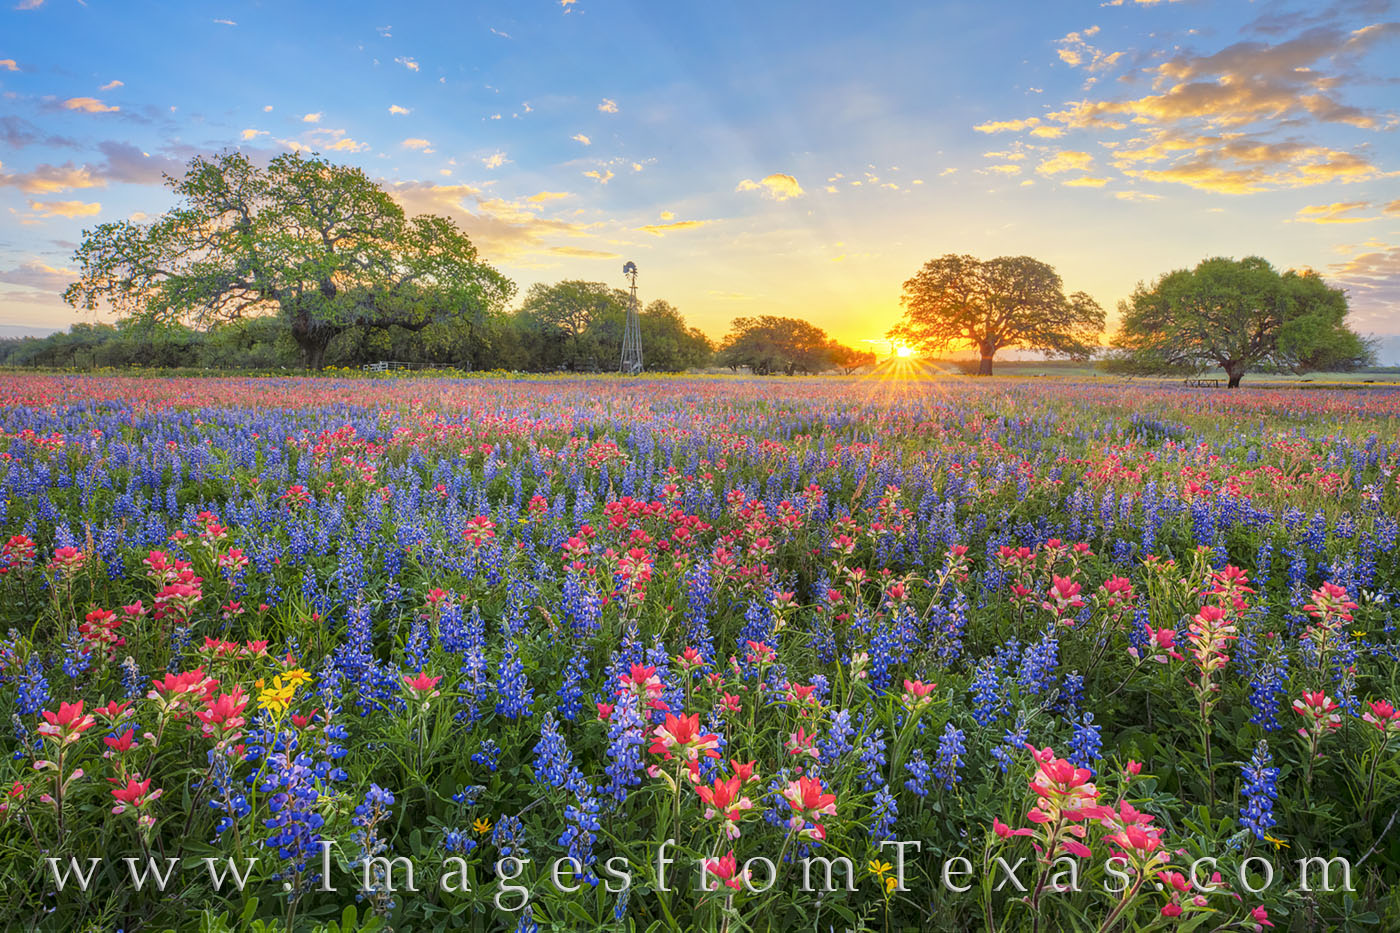 wildflowers, bluebonnets, paintbrush, sunrise, indian paintbrush, windmill, morning, blue, red, poteet, texas, cold, calm, beauty, Atascosa county